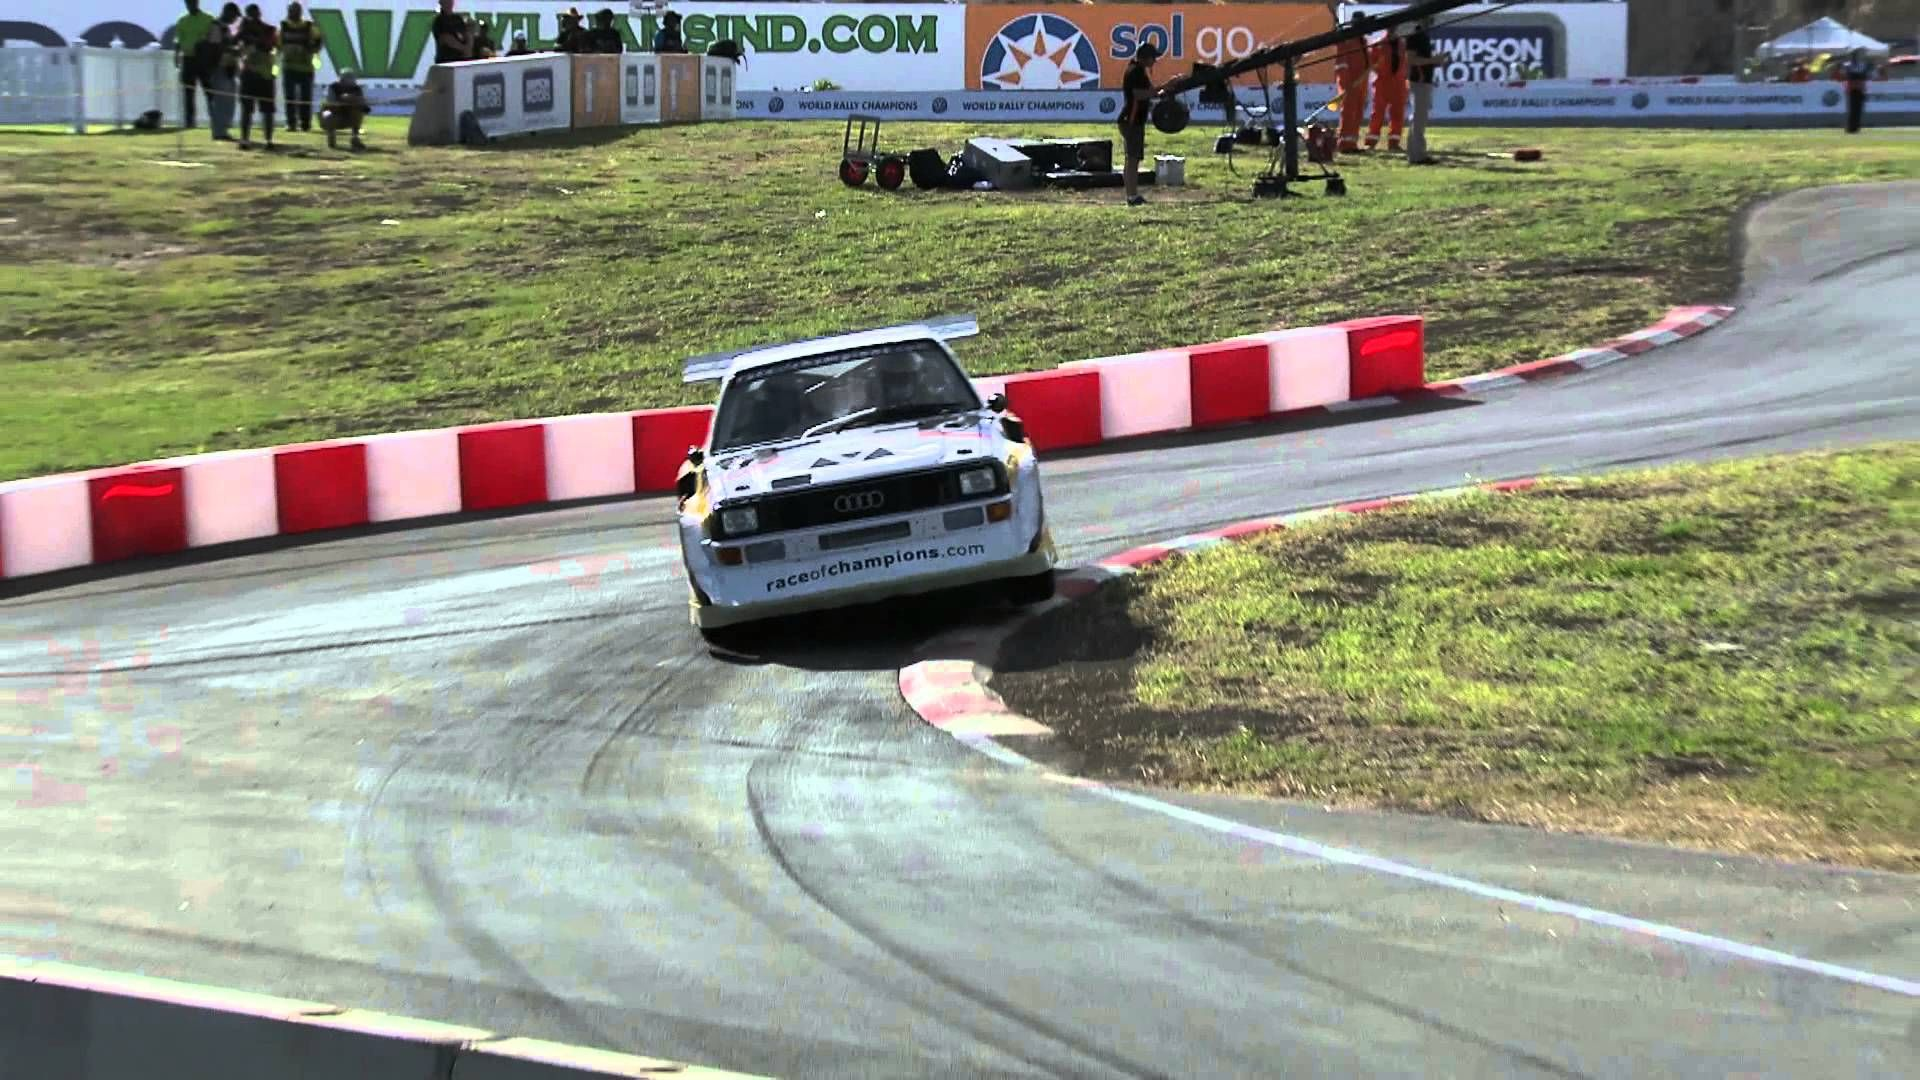 Stig Blomqvist Audi S1 Quattro Scandinavian Flick Race Of Champions 2014 Barbados Two Legends One Race Of Champions Track Stig Audi Barbados Racing